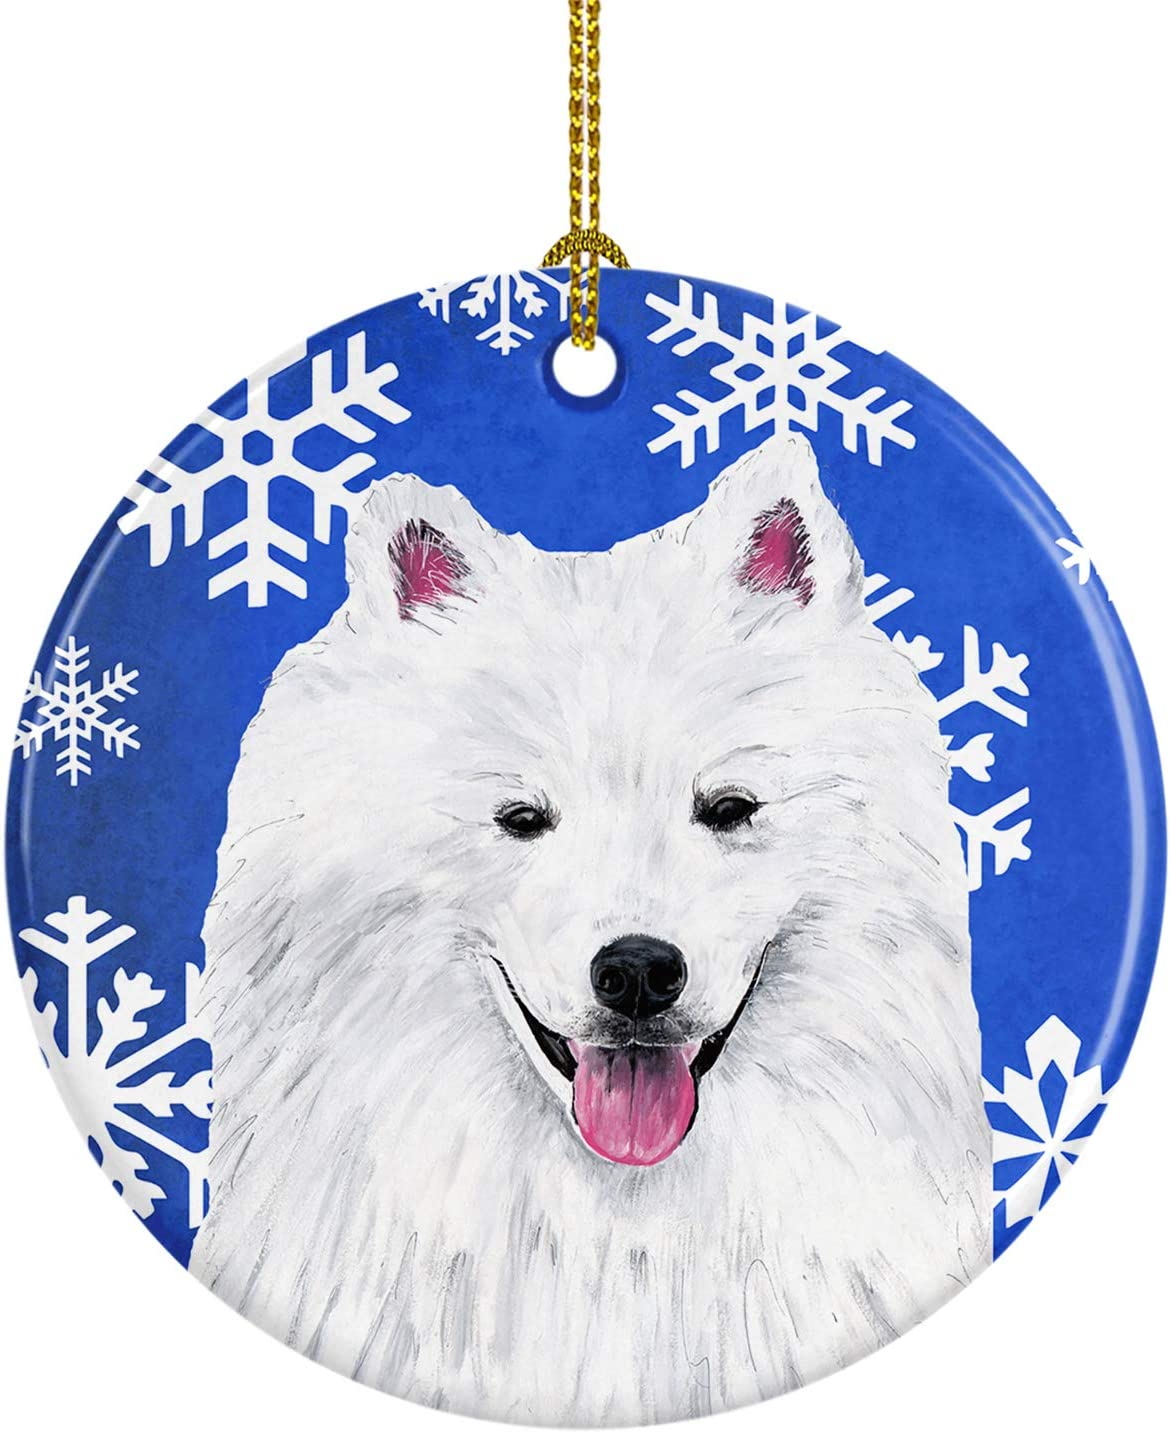 Amazon Com Caroline S Treasures Sc9379 Co1 American Eskimo Winter Snowflakes Holiday Ceramic Ornament Sc9379 3 In Multicolor Caroline S Treasures Home Kitchen